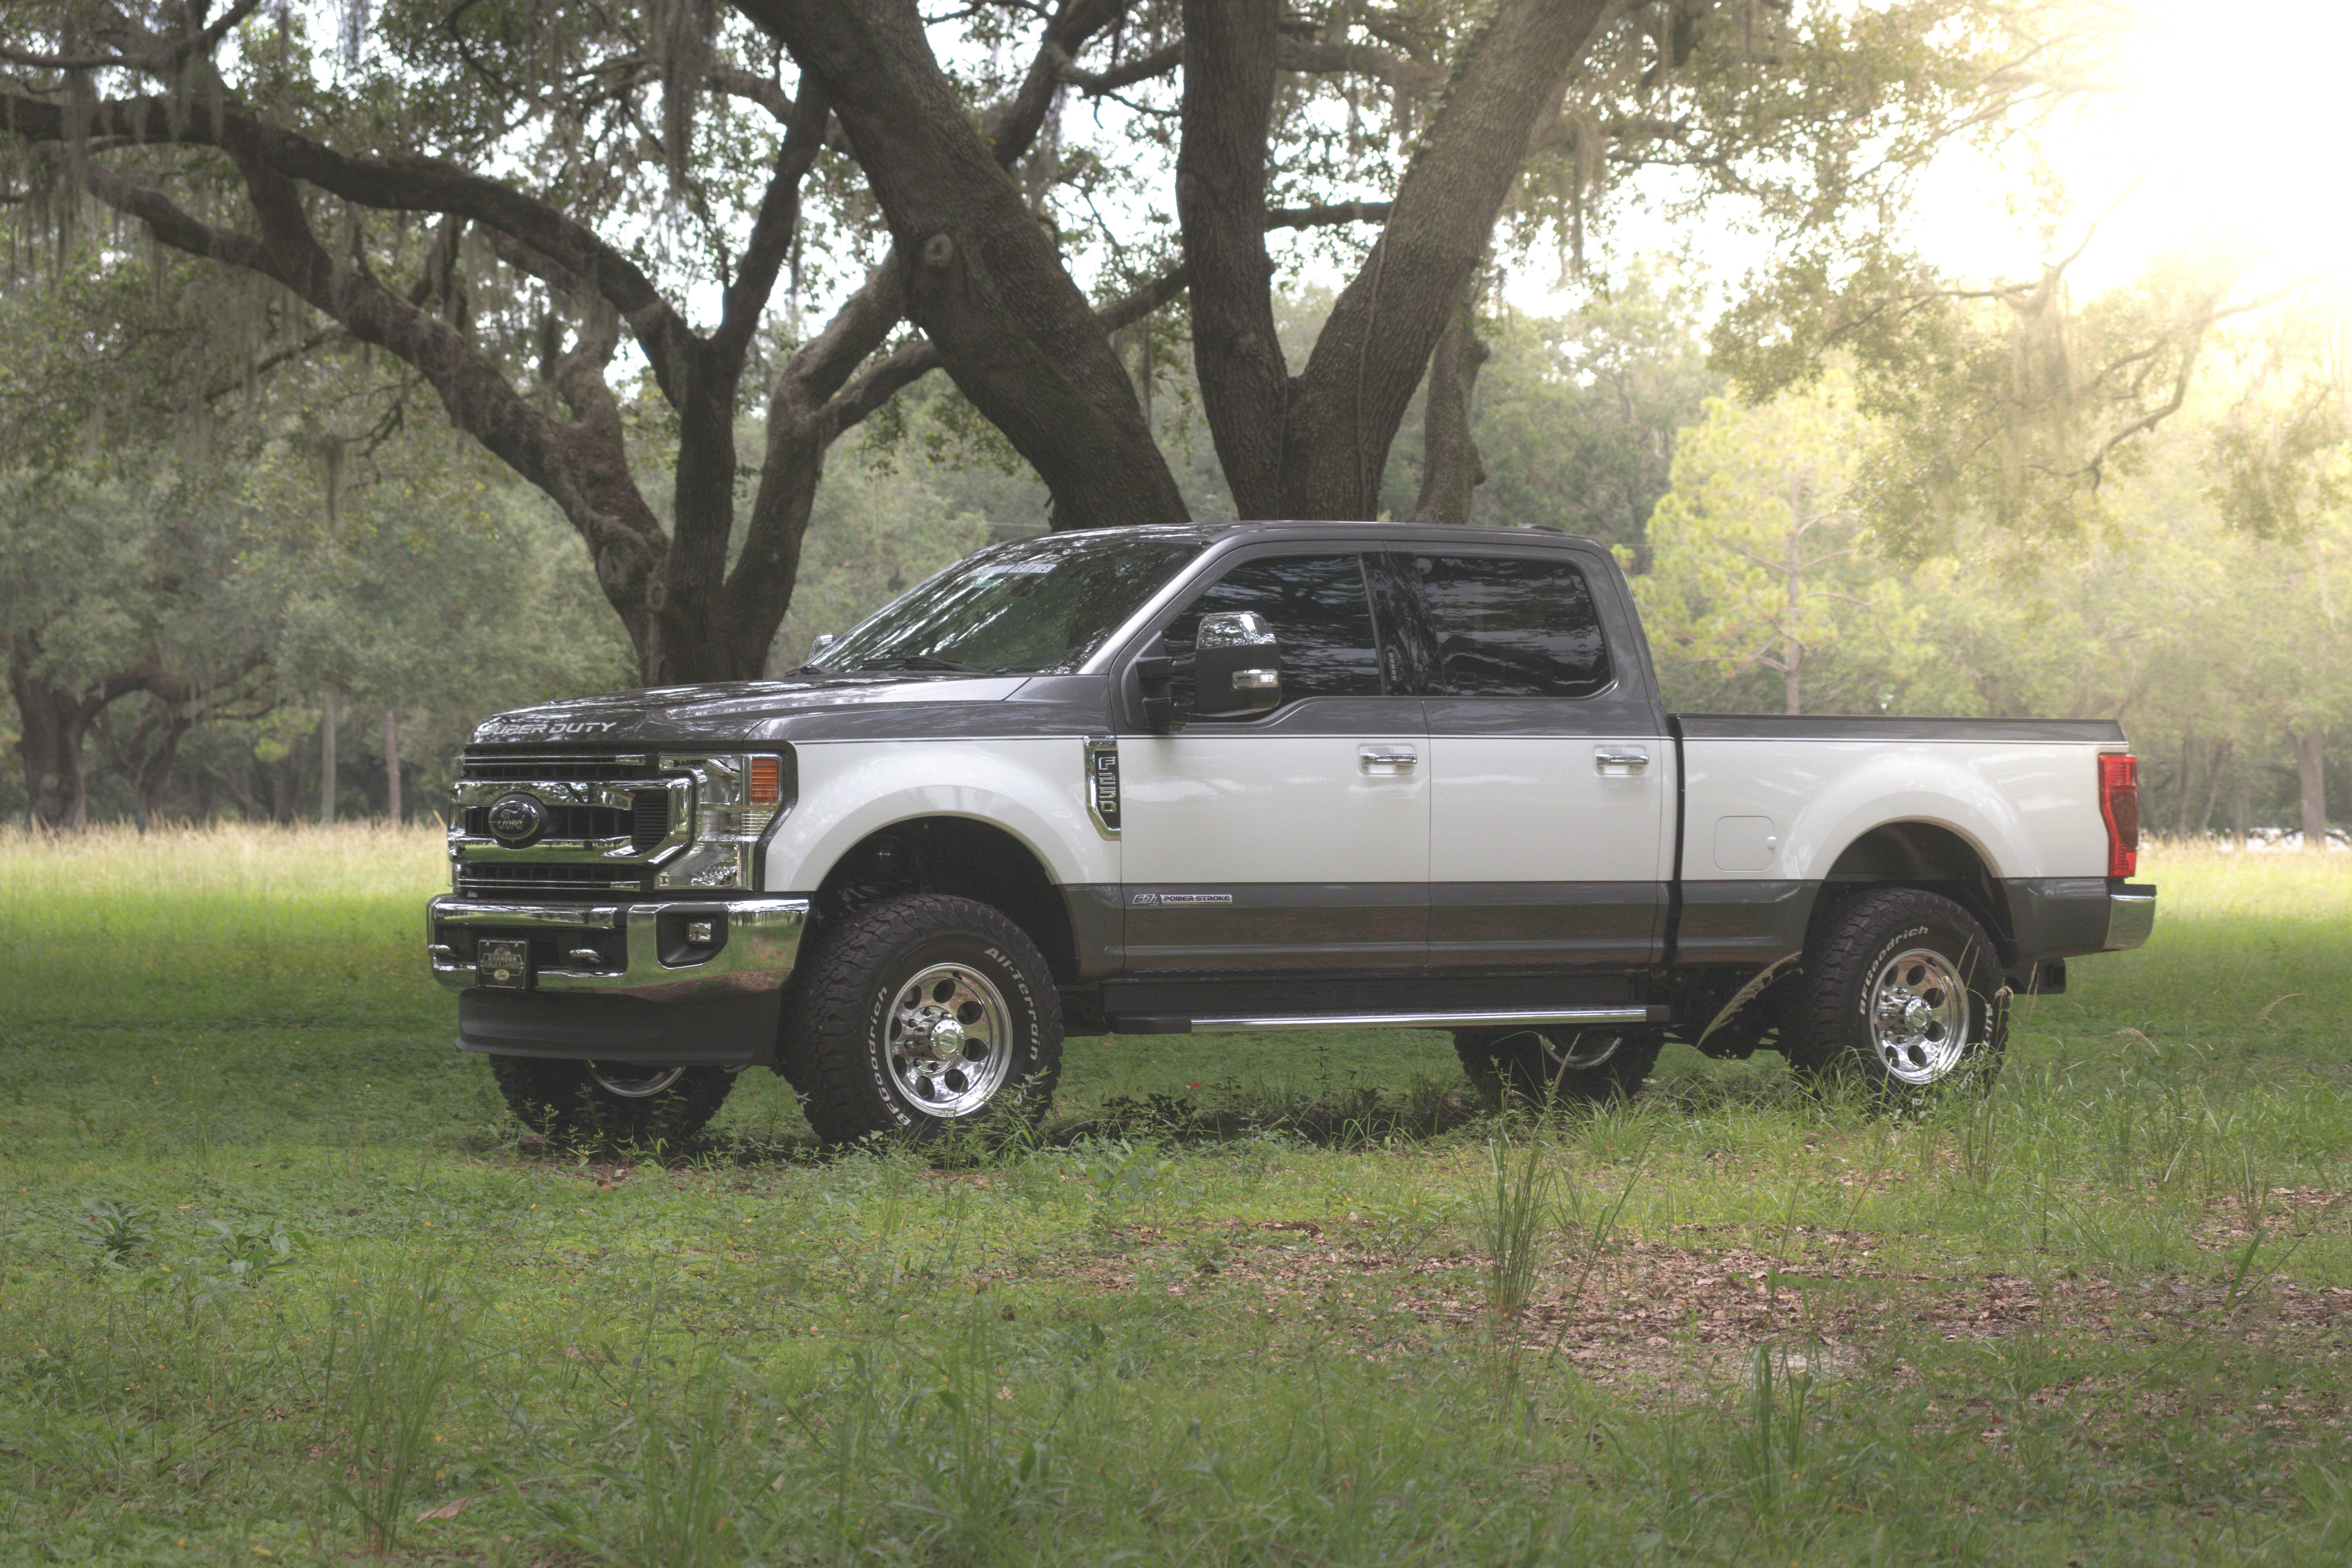 side view of a gray Ford Super Duty